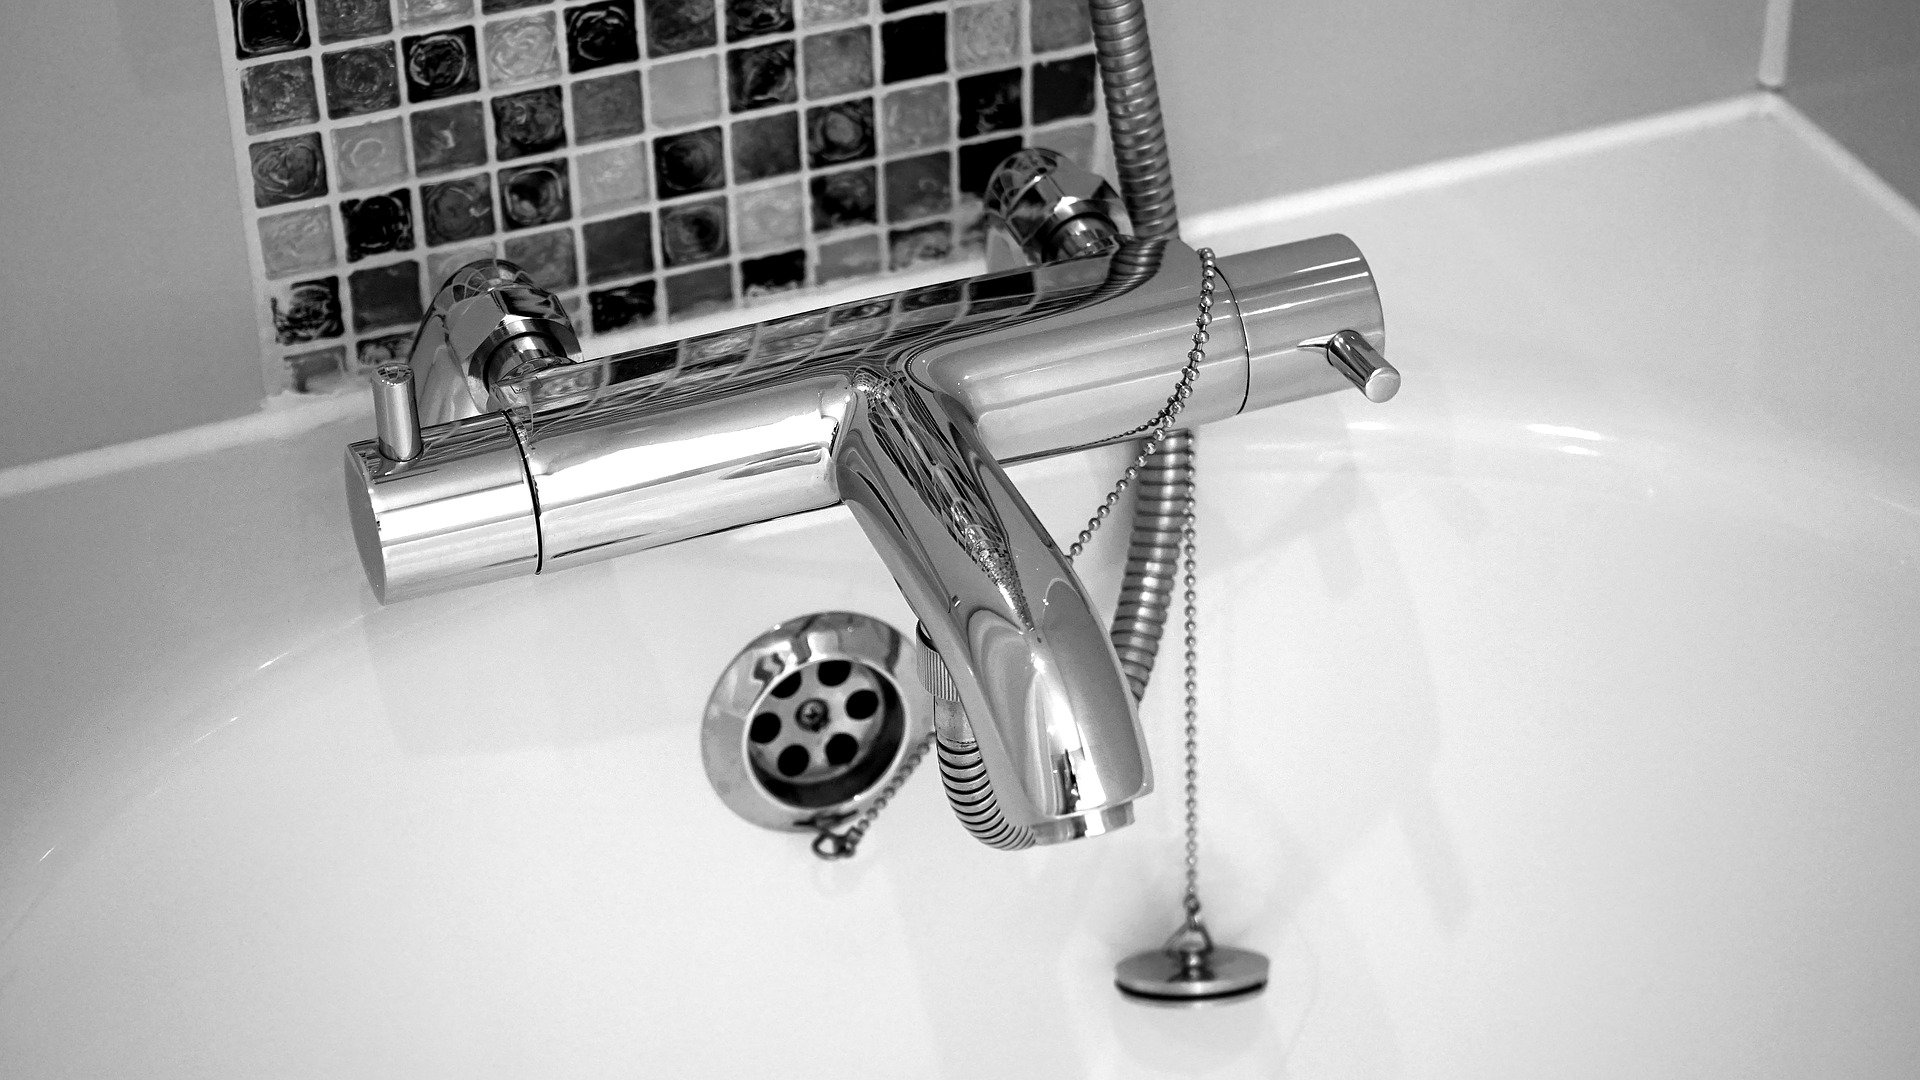 Maintenance For Your Water Heater That Keeps You Smiling